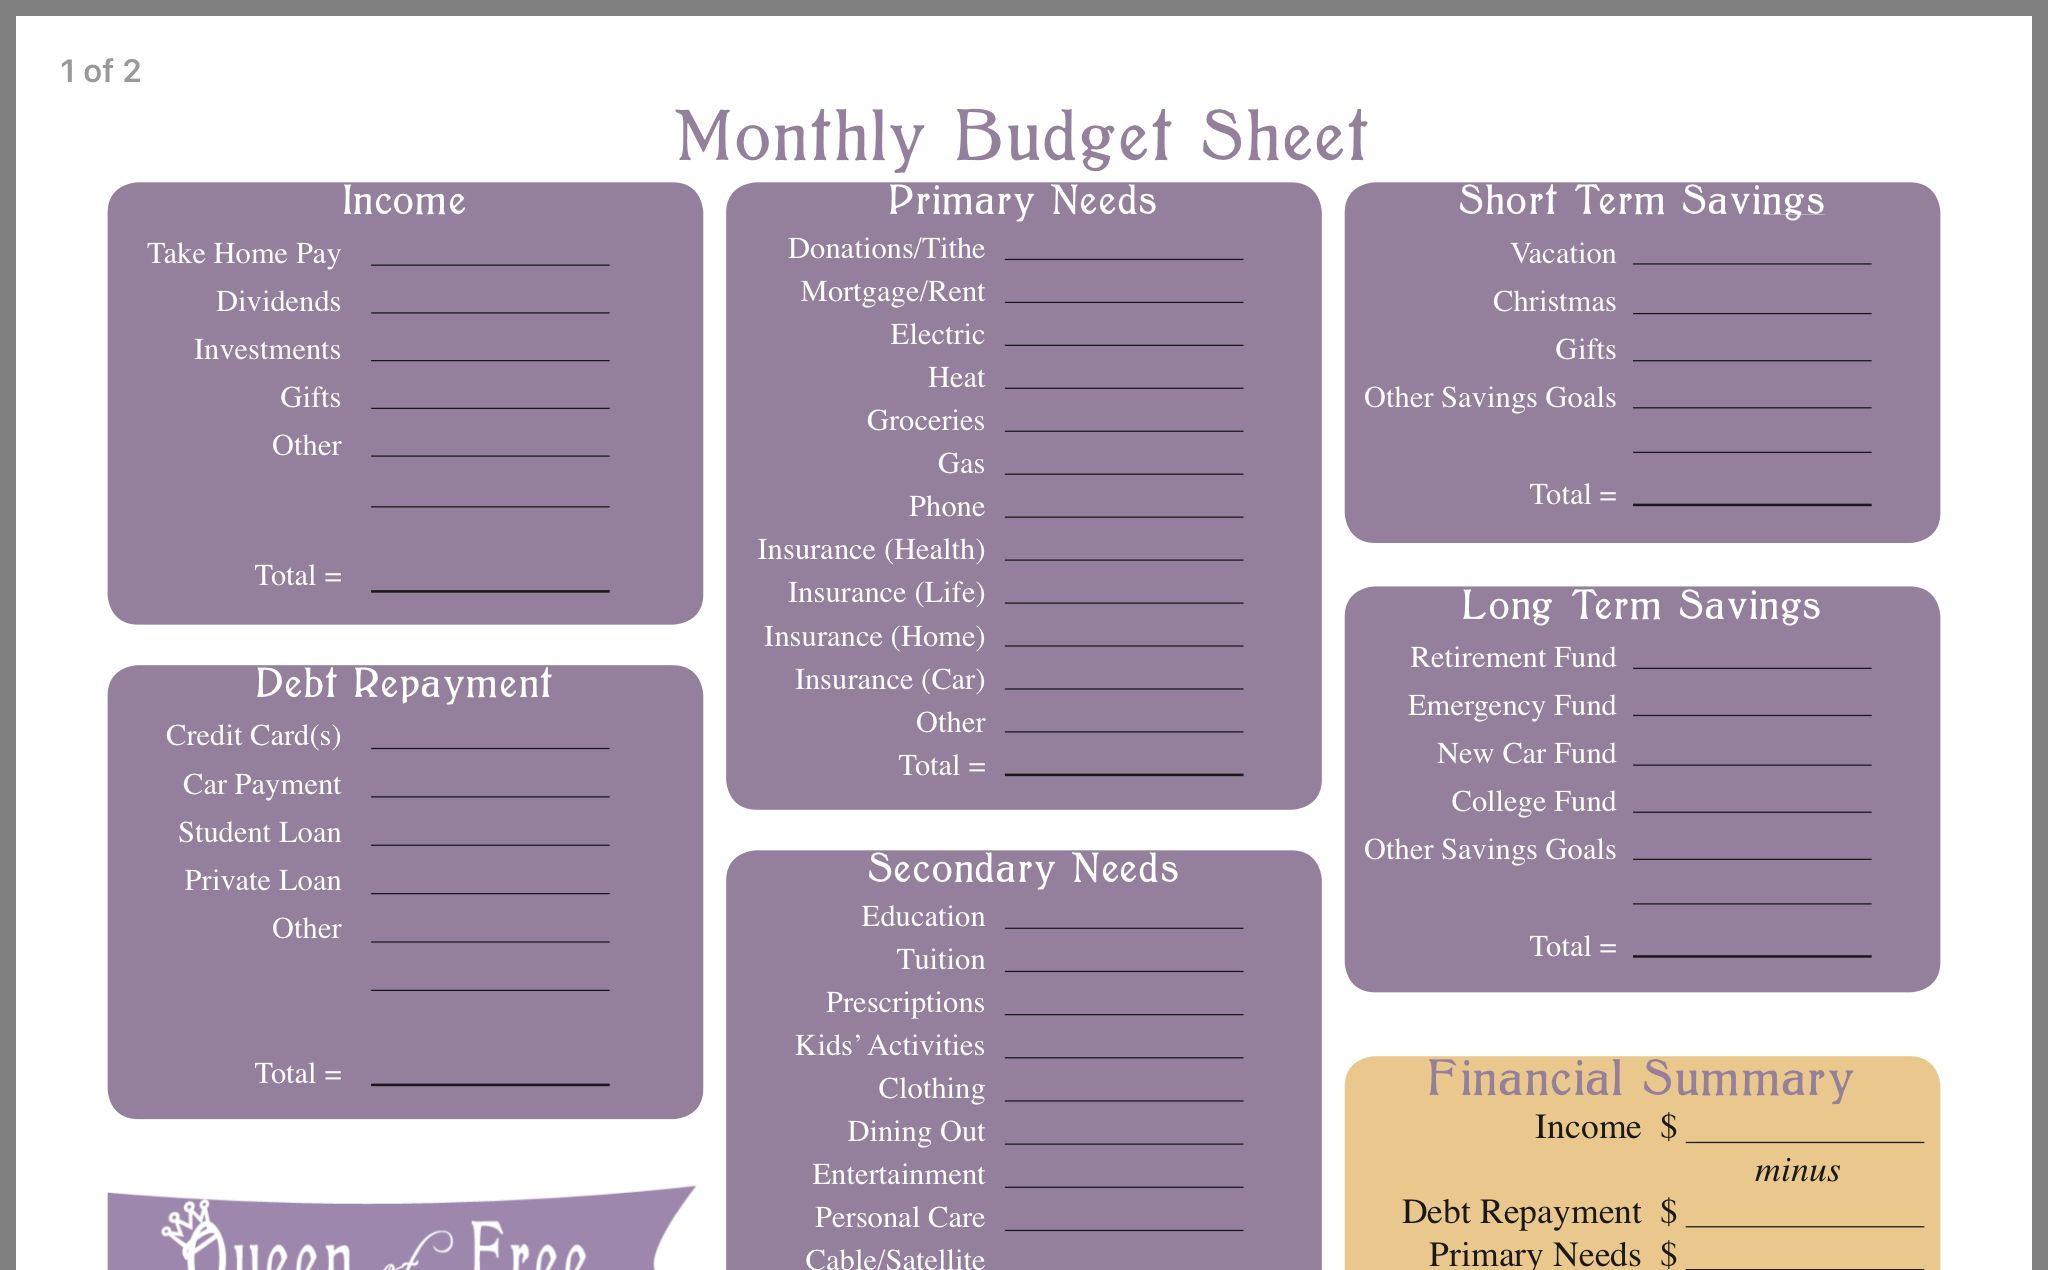 Monthly Budget Sheet Image By Lorry Neale On Scrapbooking